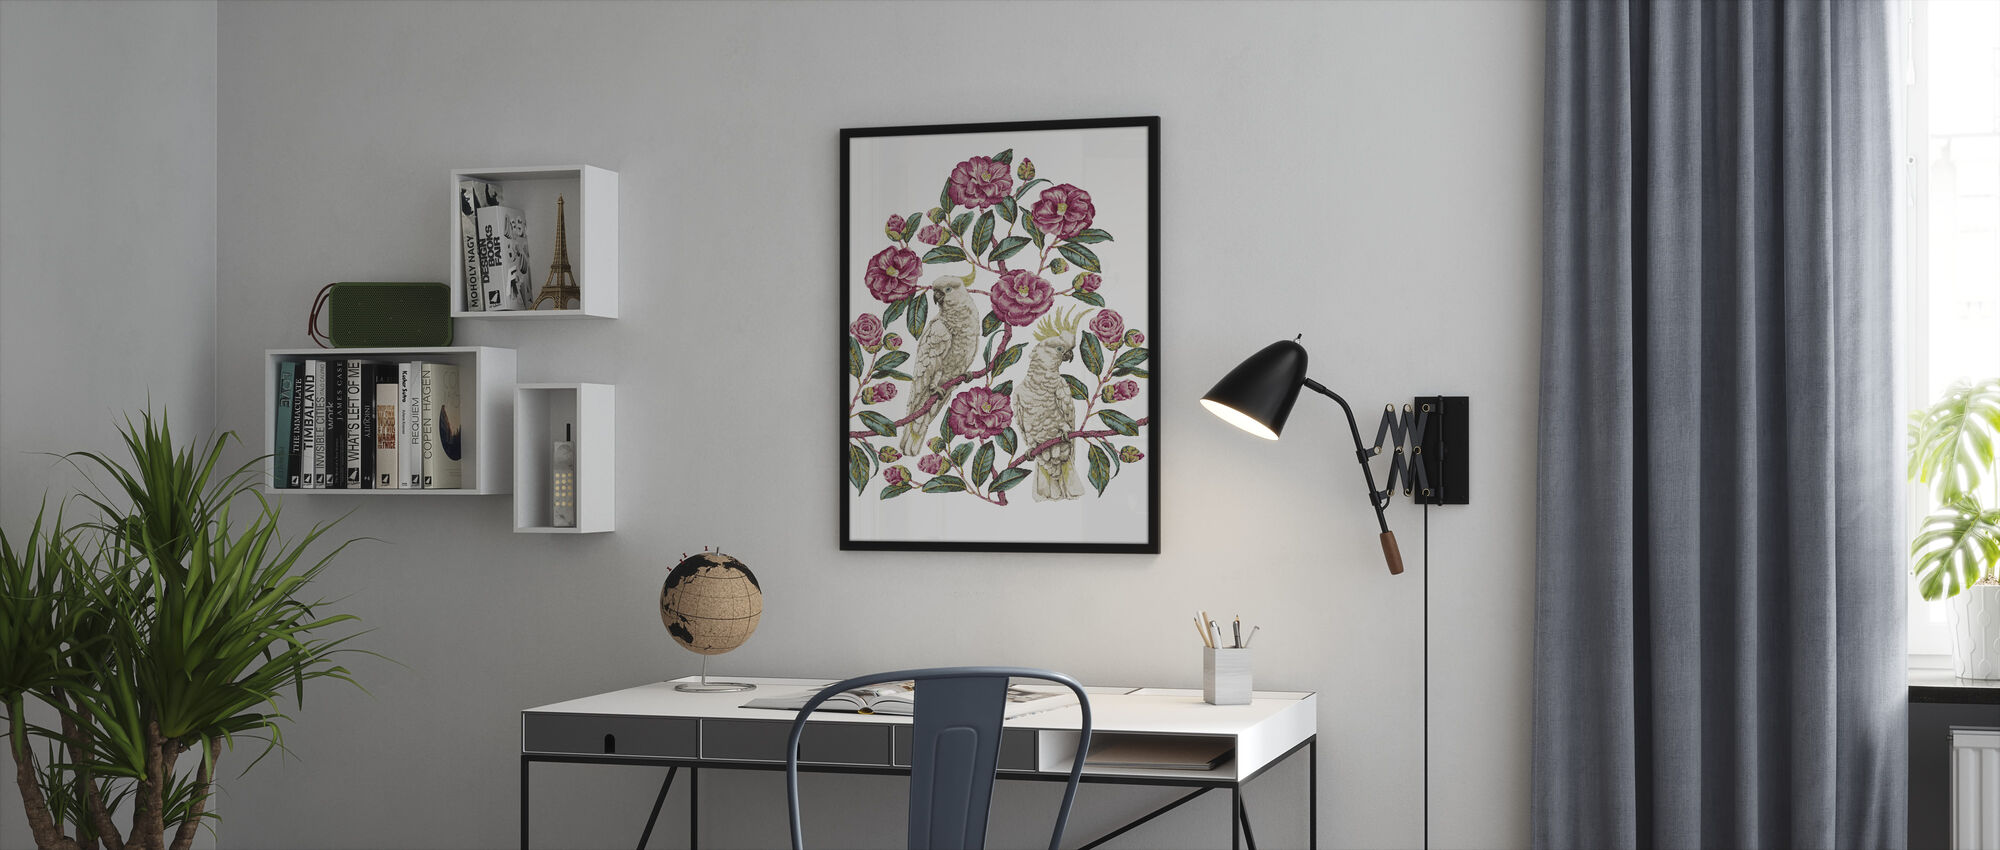 Cockatoo Paradise - Geranium and Emerald - Framed print - Office